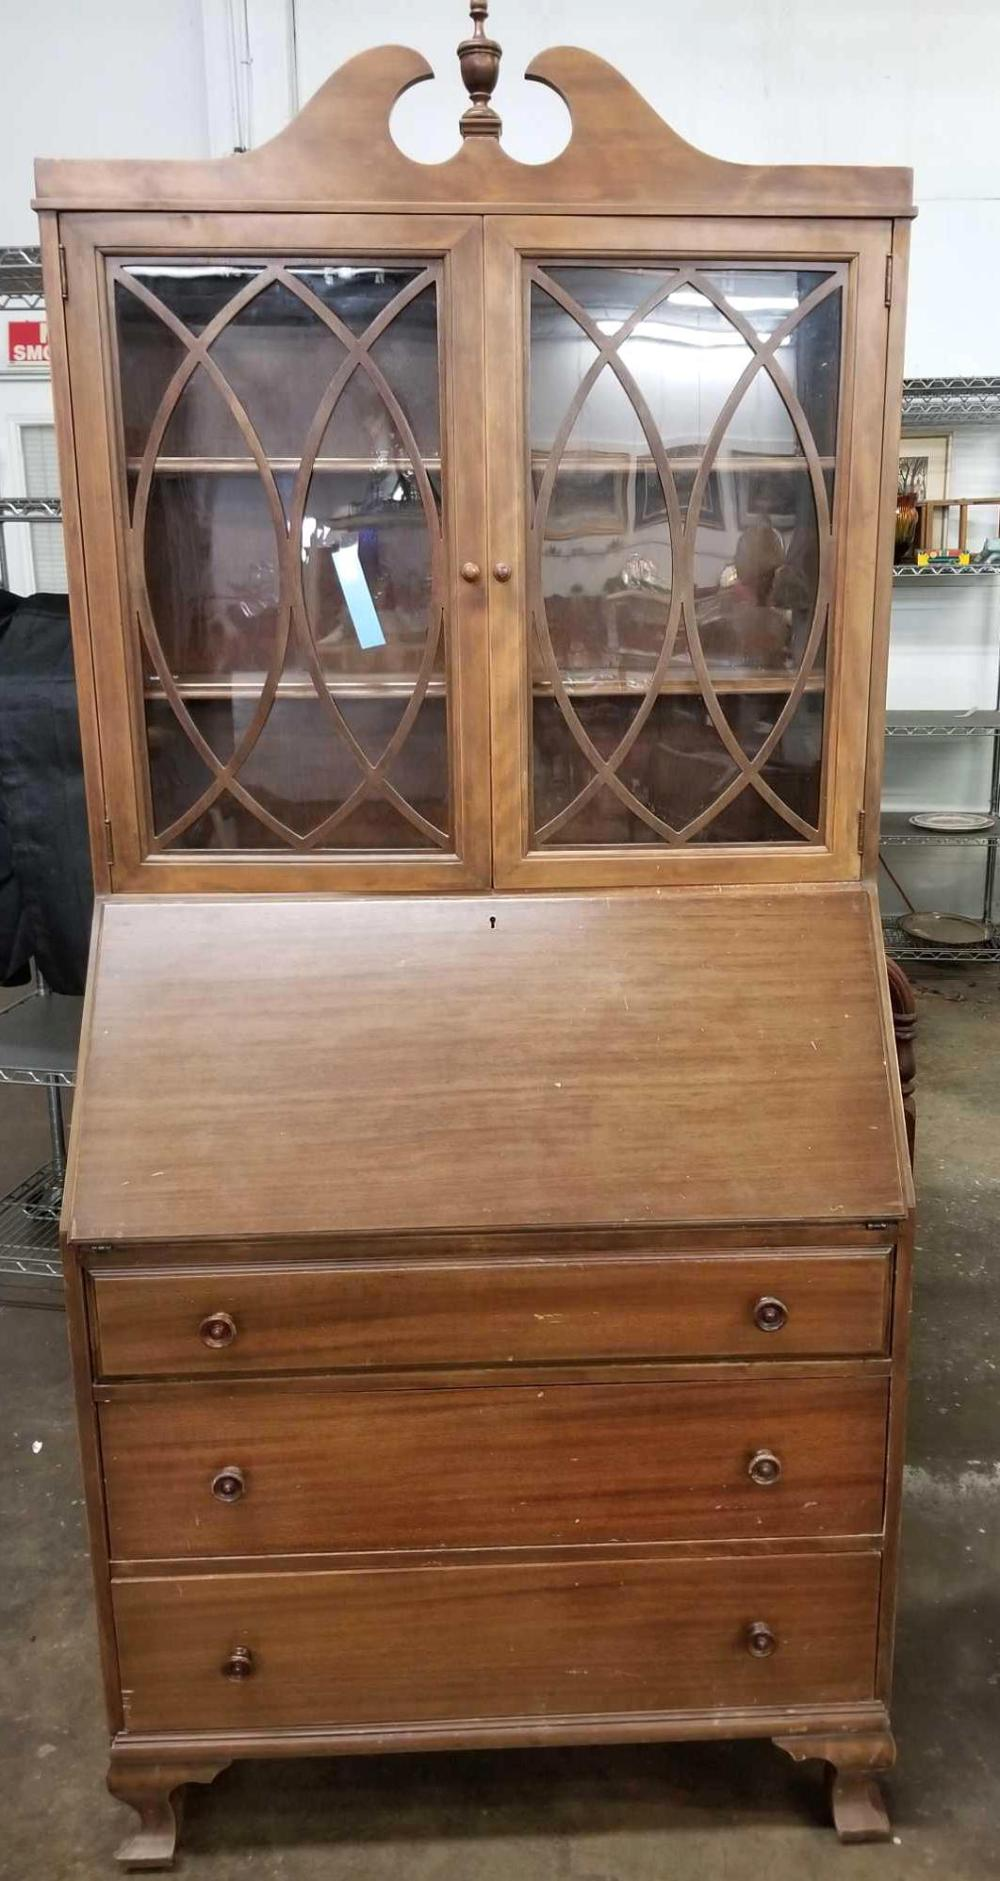 1970'S VINTAGE CHIPPENDALE STYLE DROP FRONT SECRETARY BOOKCASE